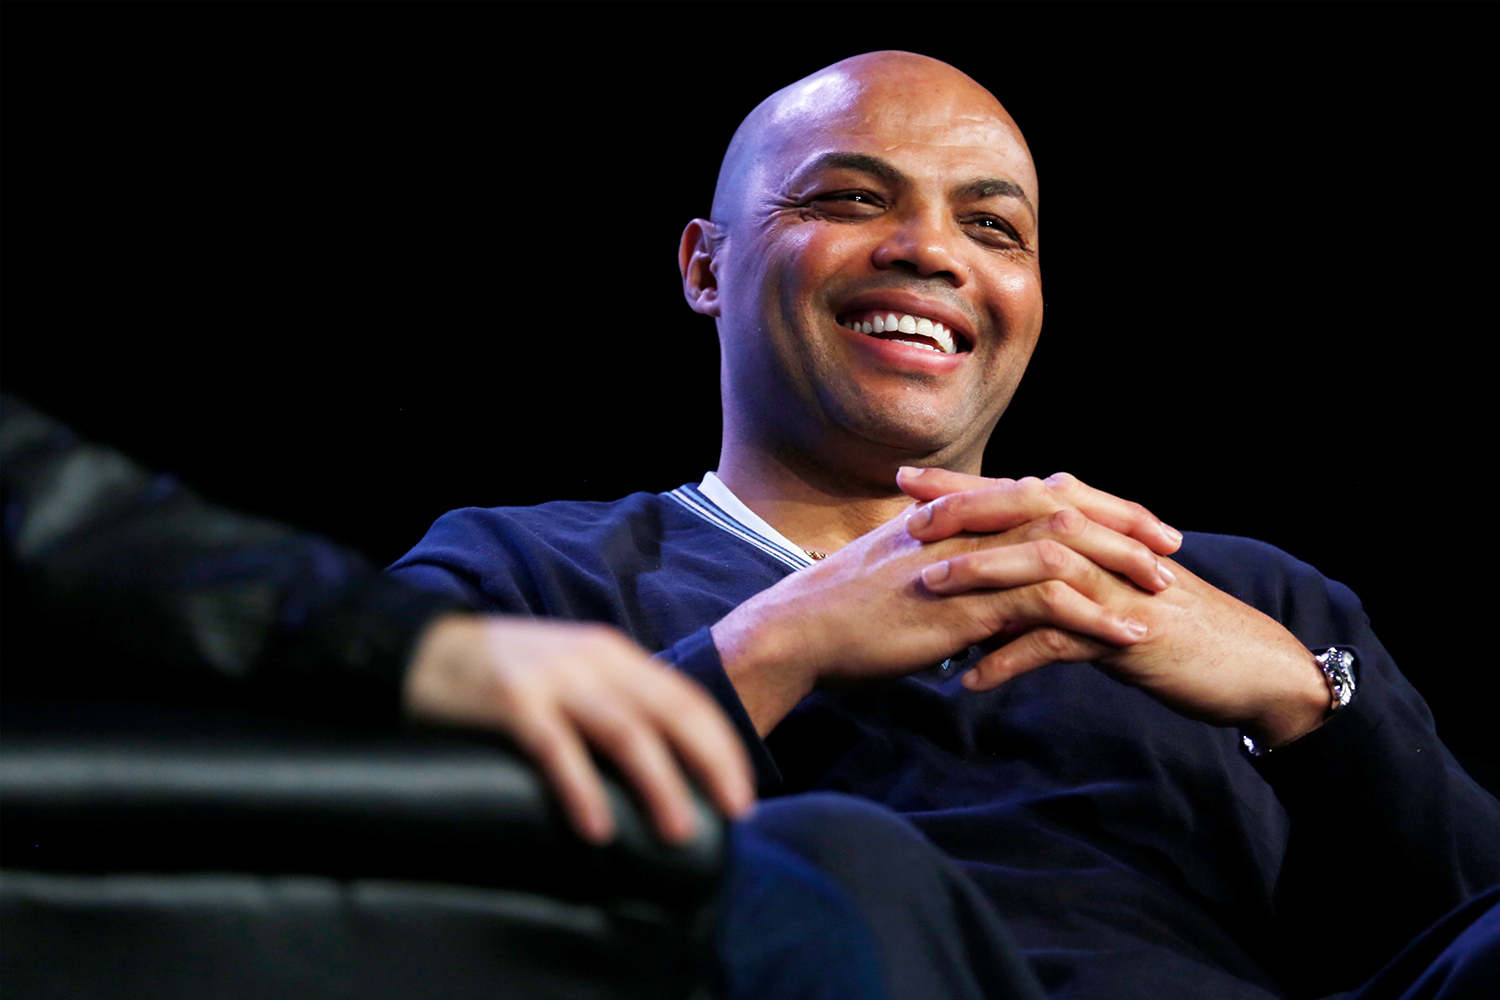 Charles Barkley: Why Maverick NBA Player's Stories Are Legendary